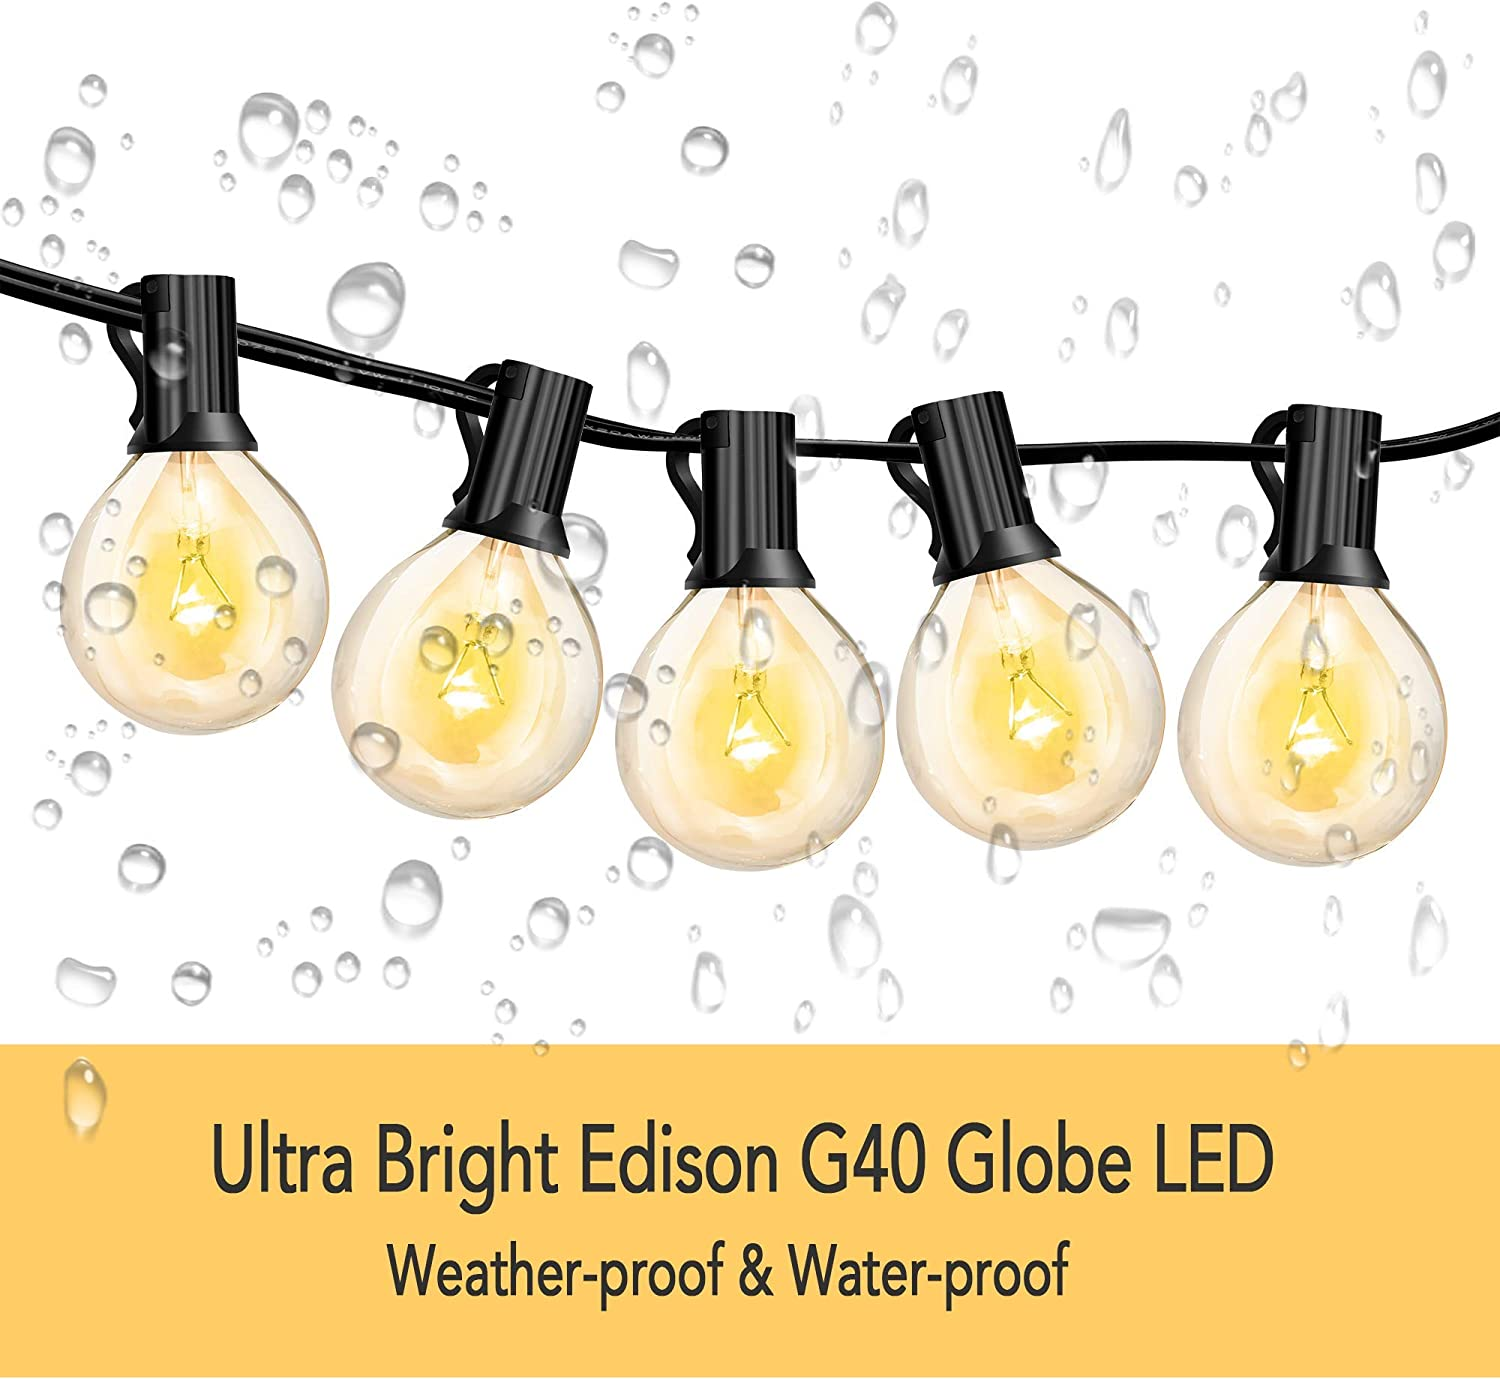 String Lights S14 Solar Waterproof End to End Design Easy Install Indoor outdoor